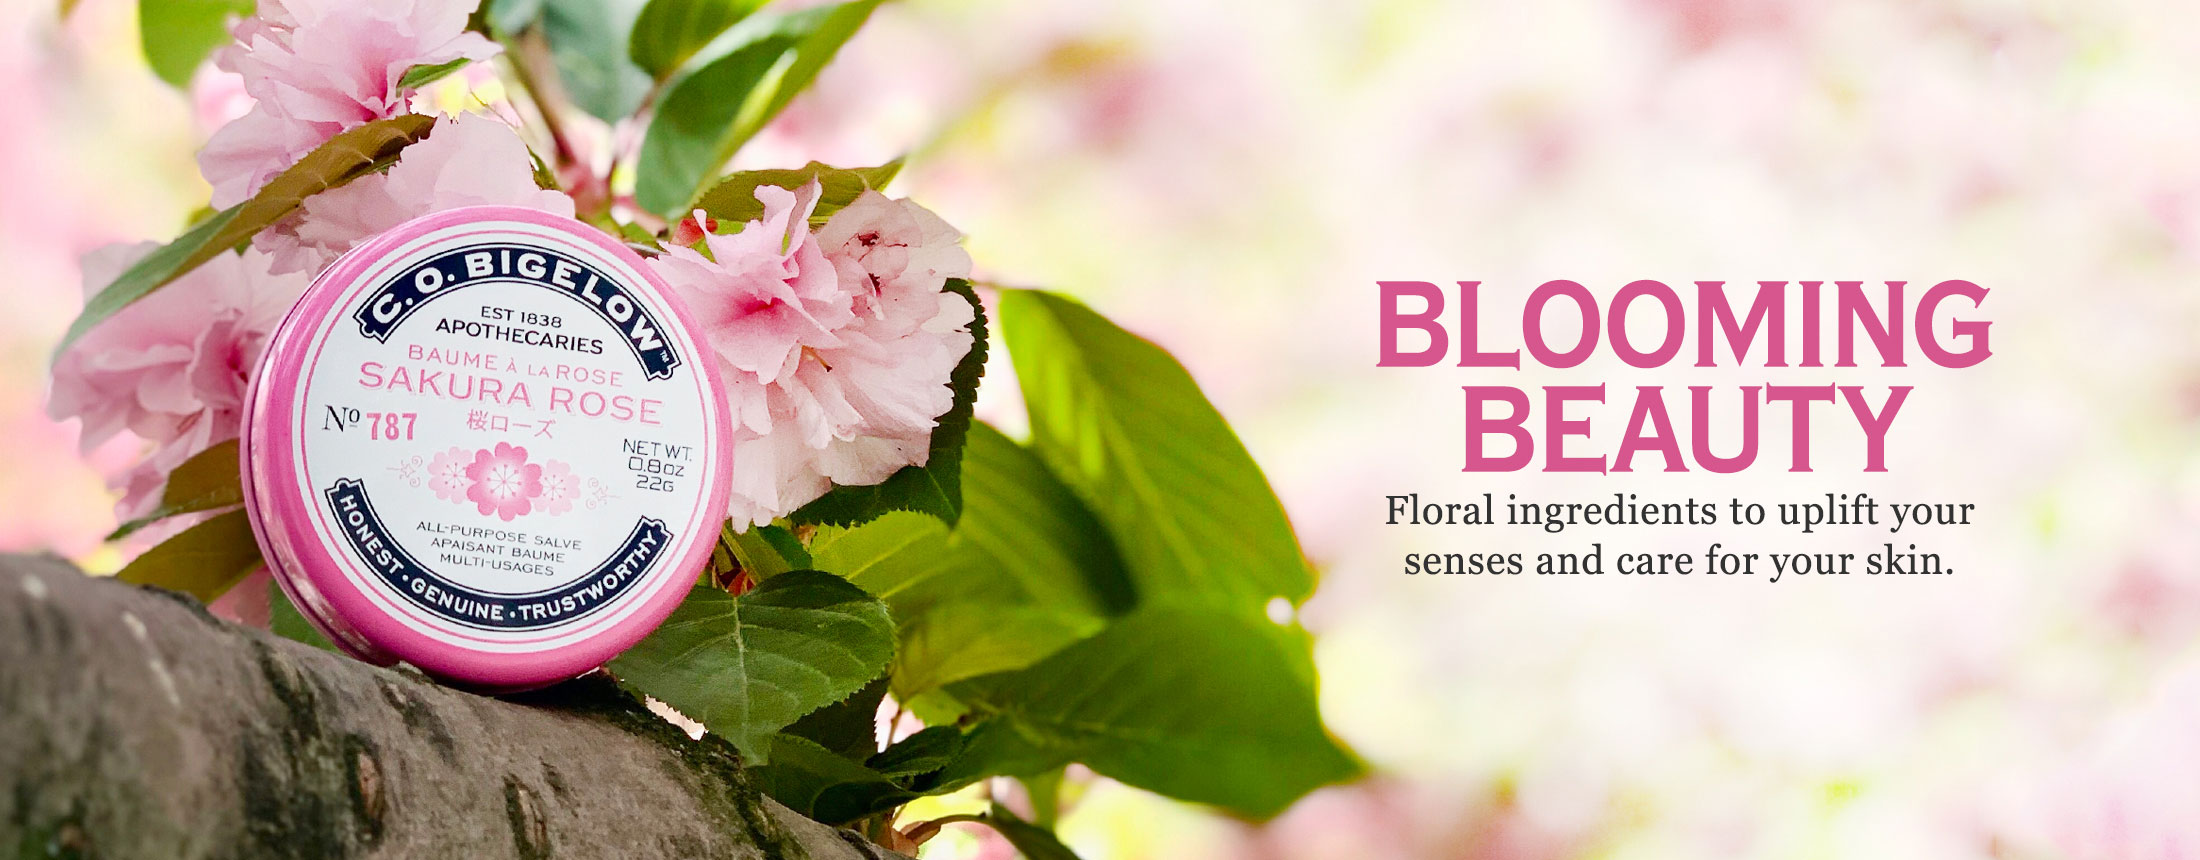 Blooming Beauty - Floral Skin Care